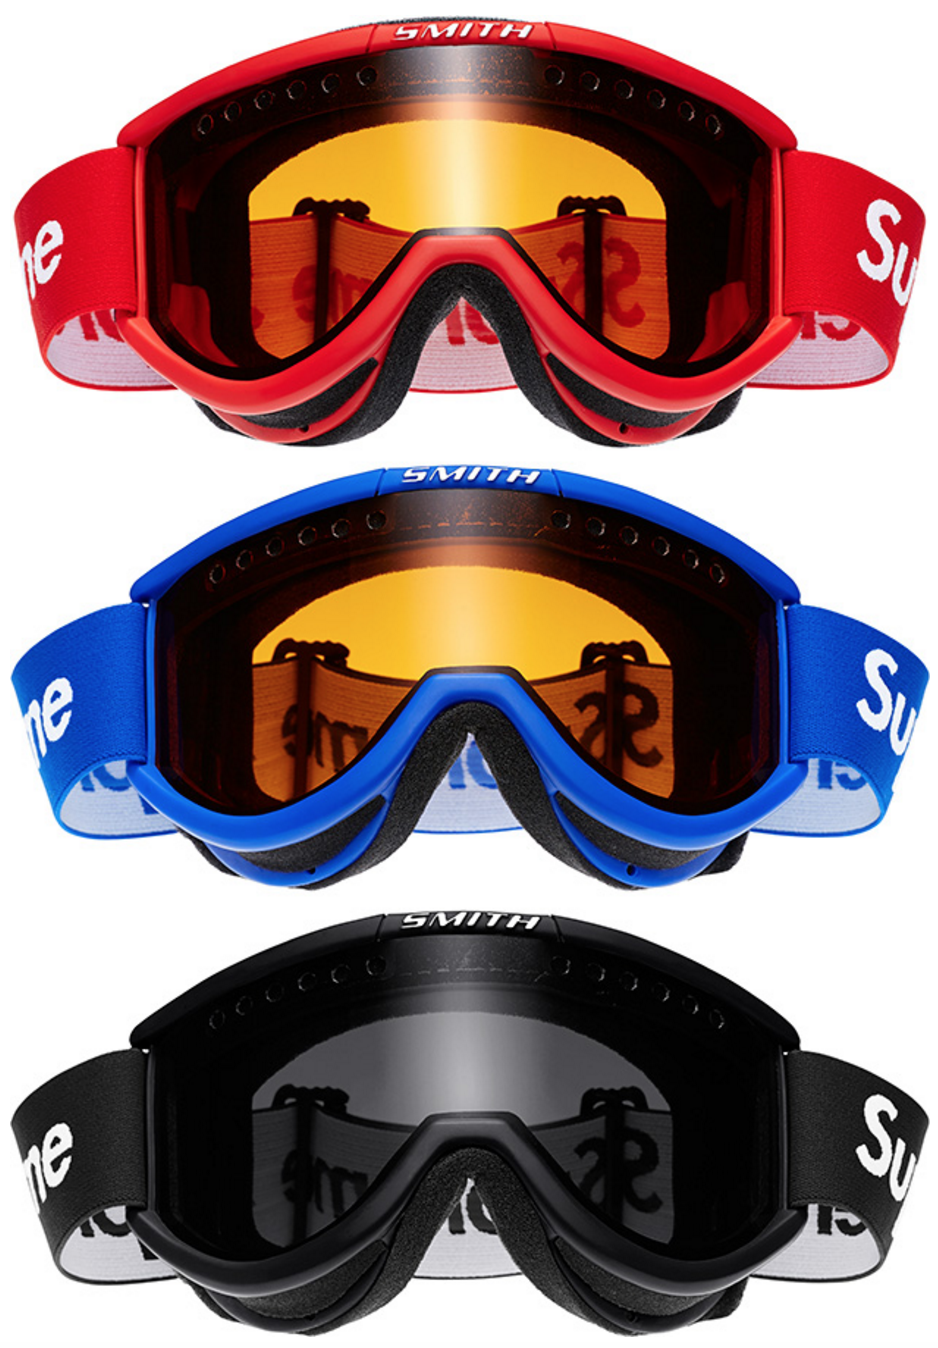 Supreme x Smith Optics Cariboo OTG Ski Goggles, $68